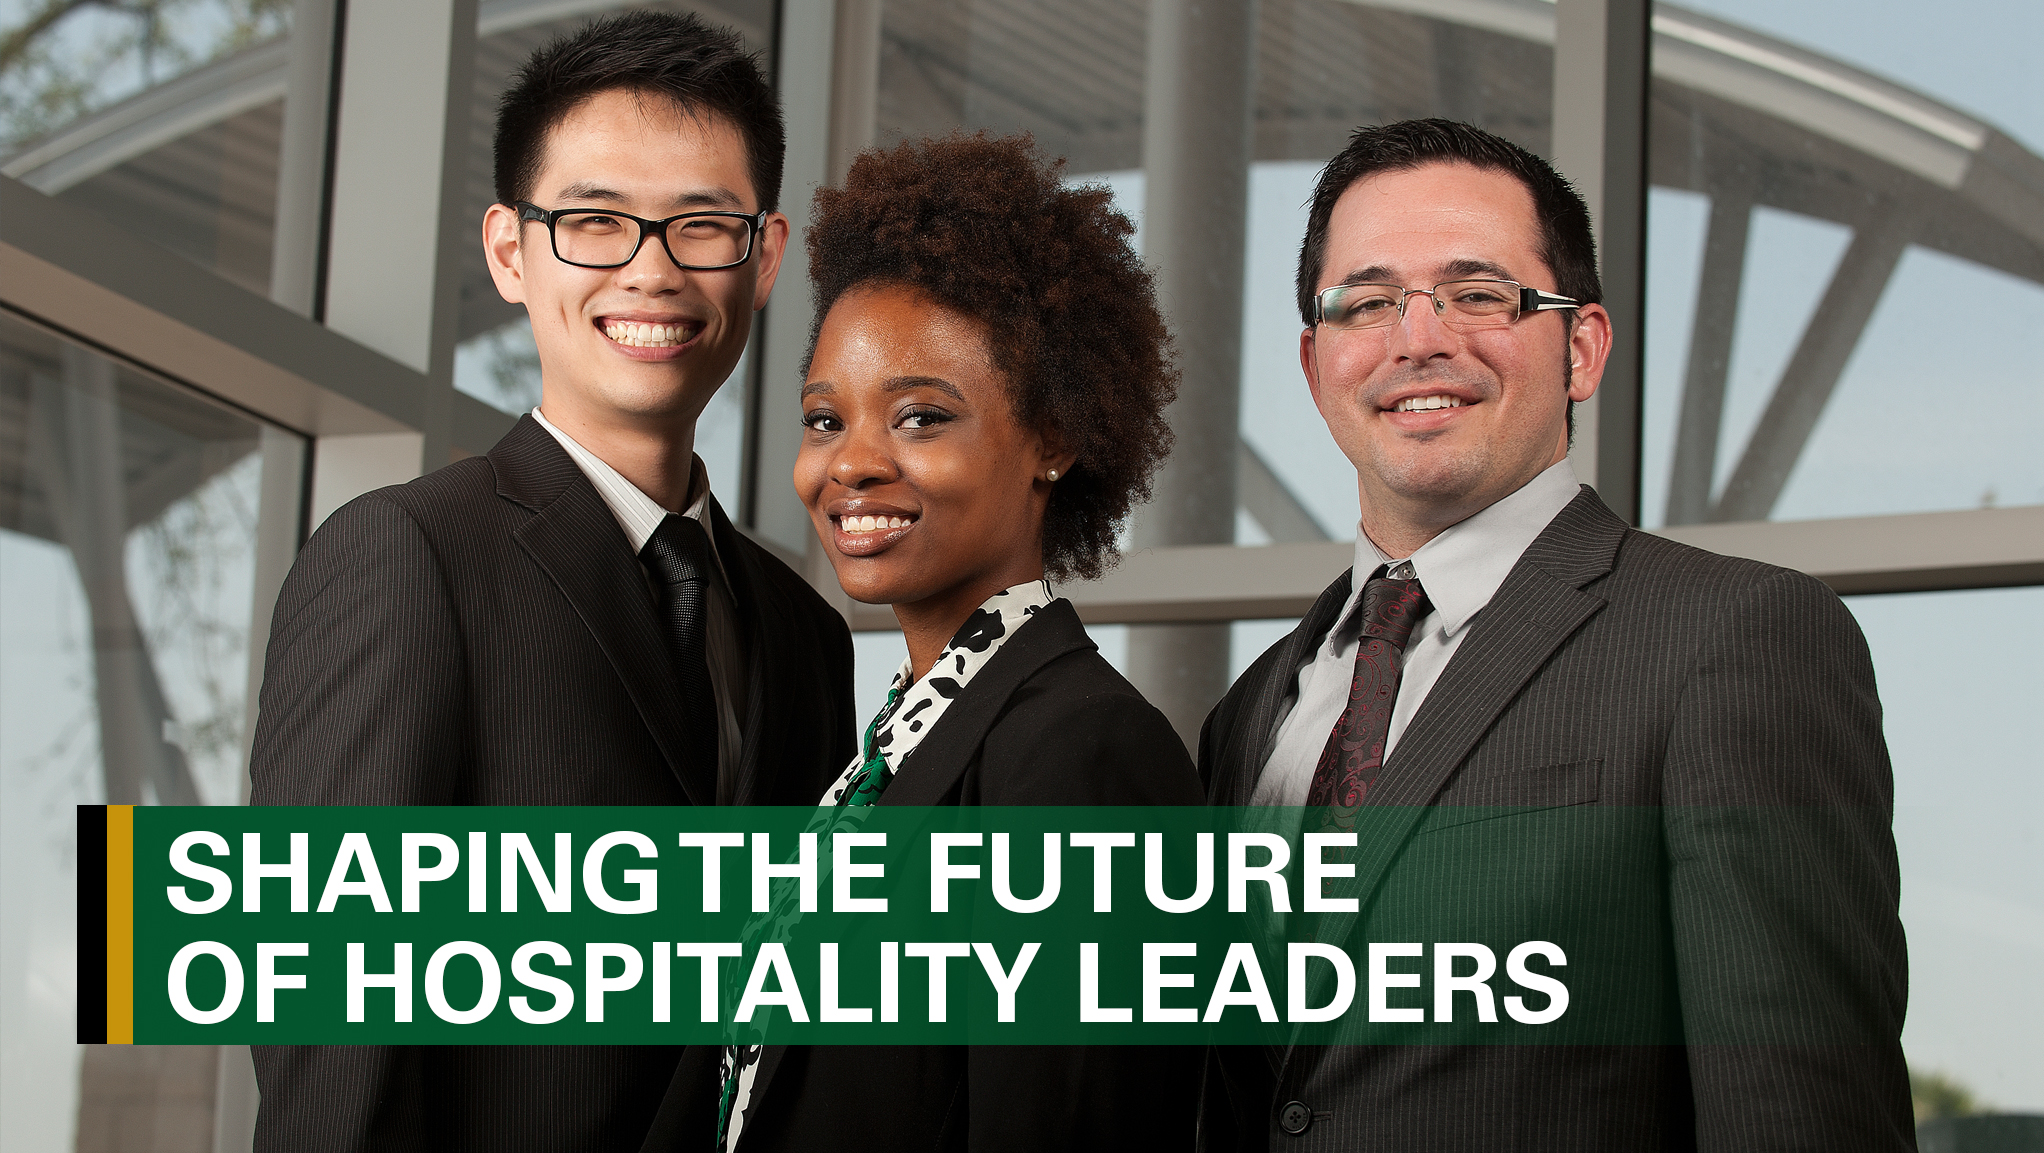 Shaping the future of hospitality leaders